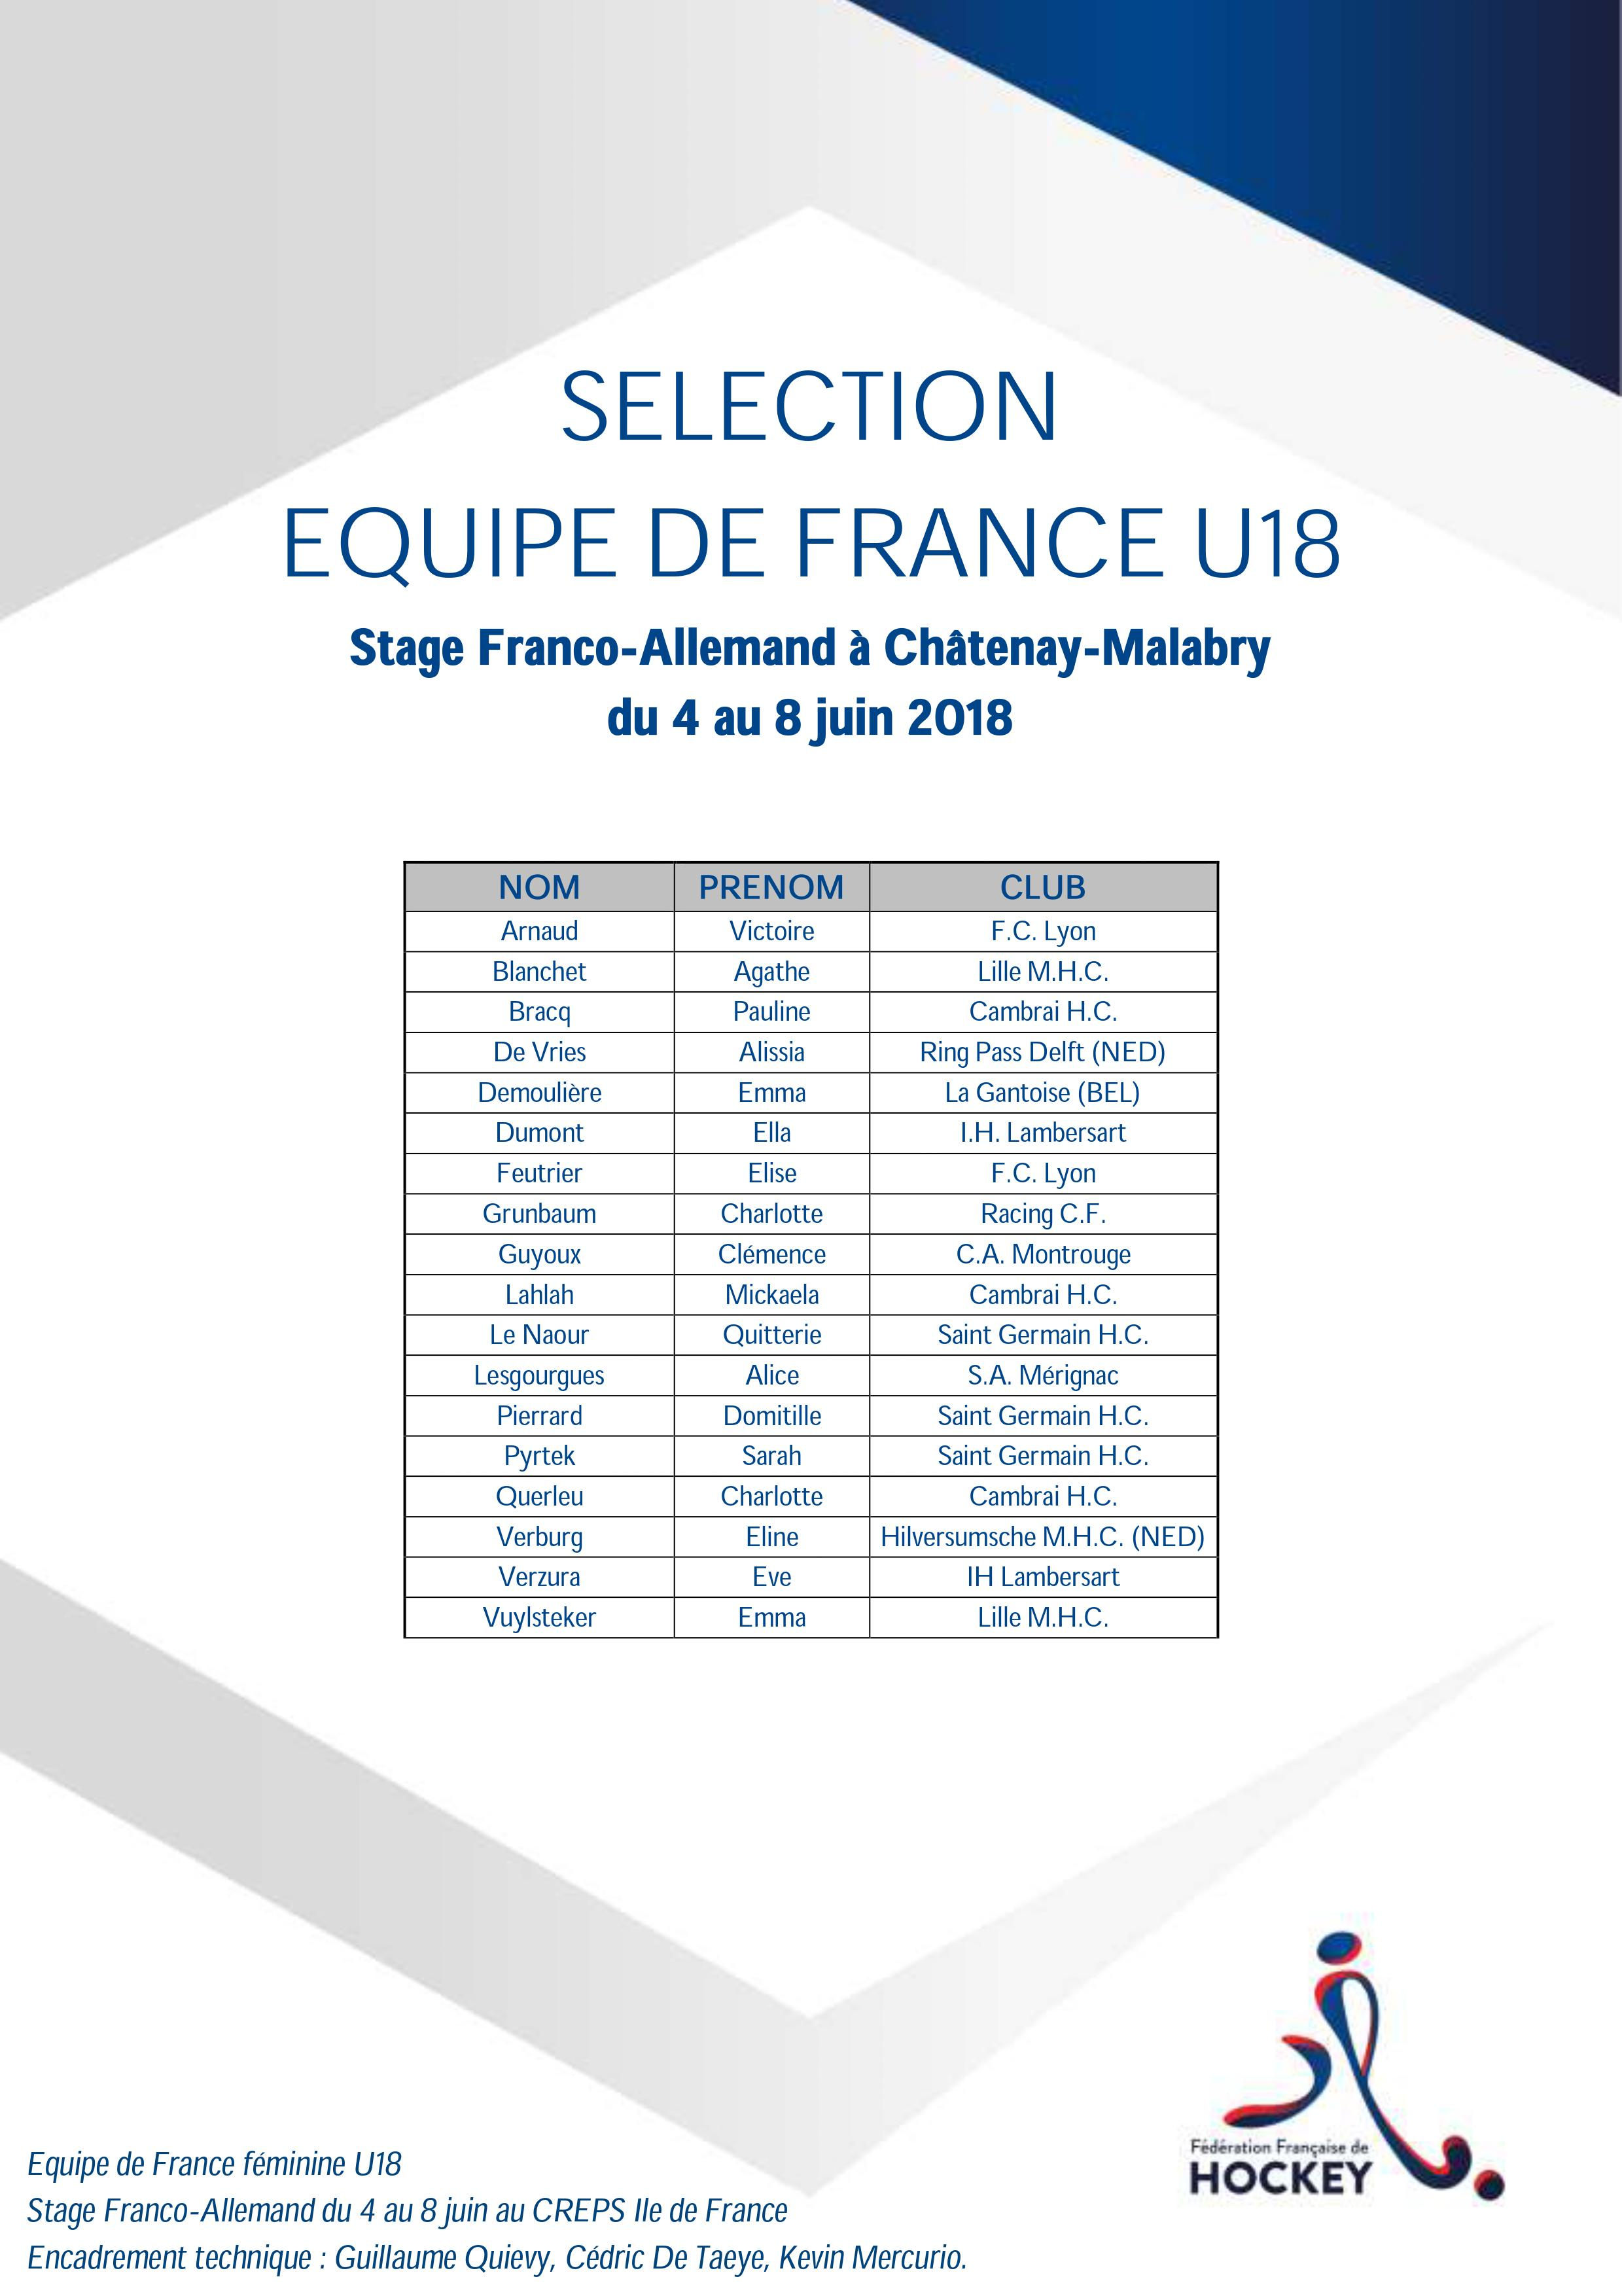 SELECTION EQUIPE DE FRANCE U18F Franco allemand du 4 au 8 juin 2018